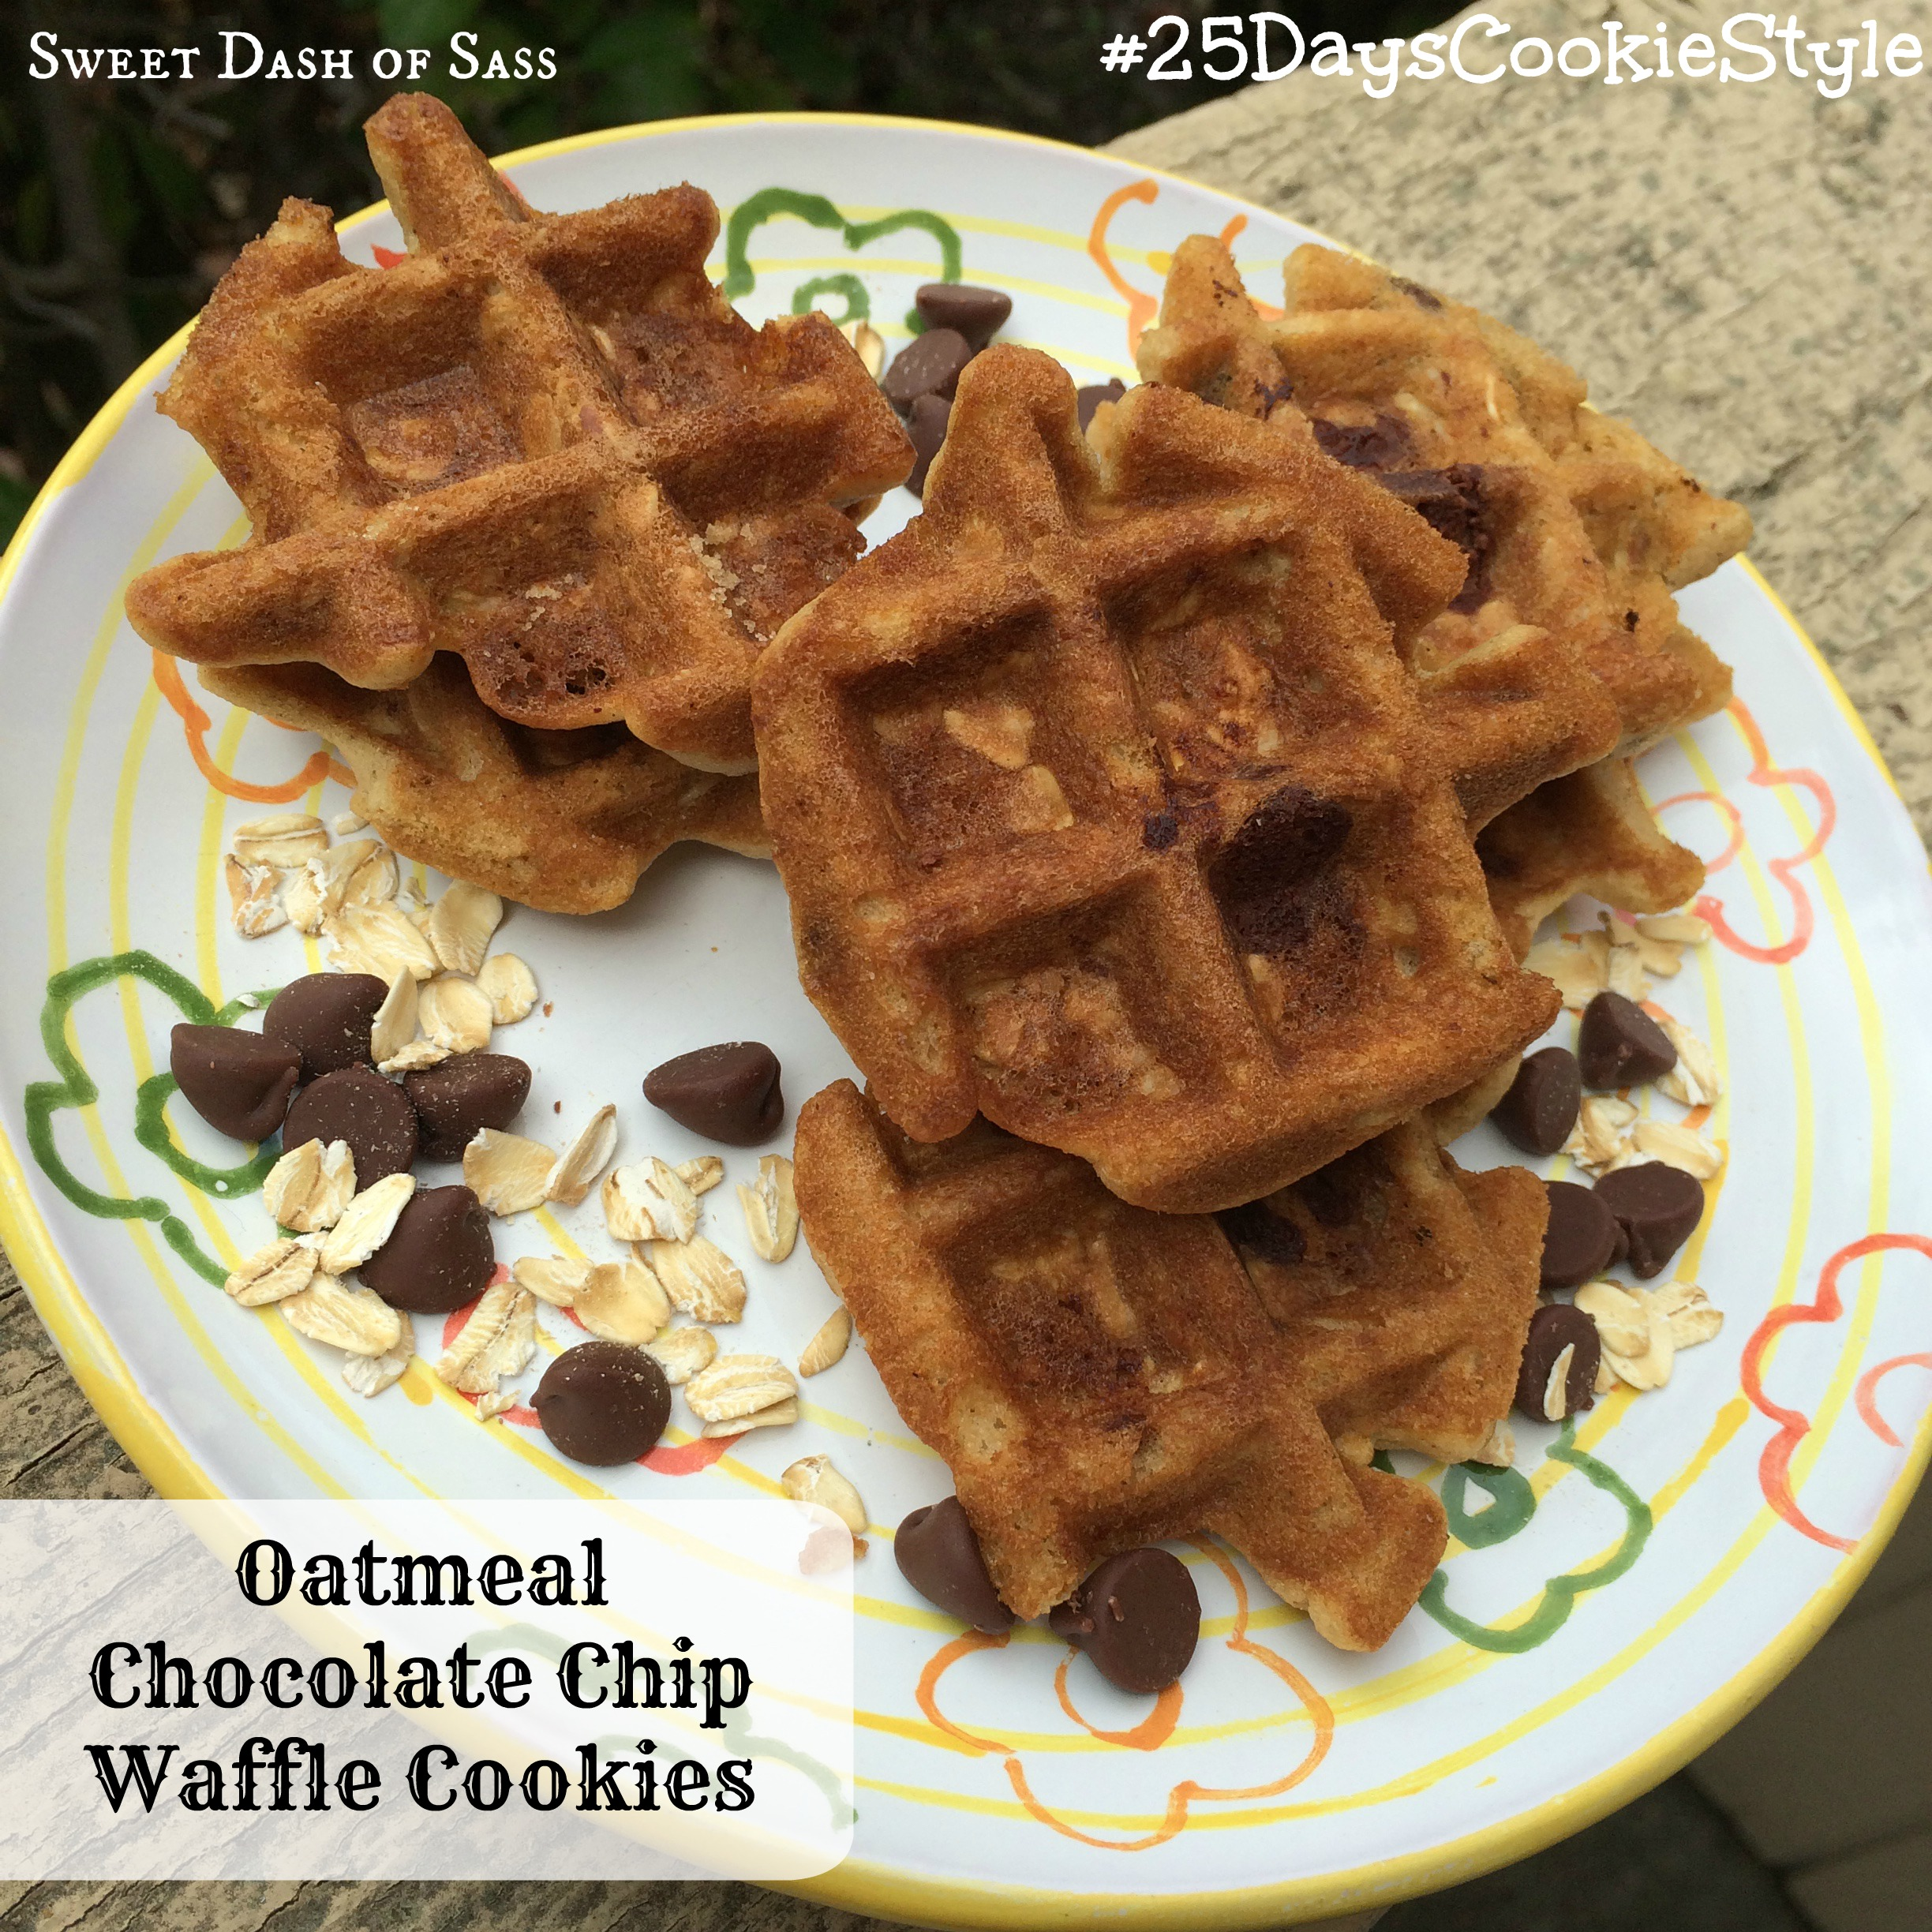 ... NEW } cookie recipe is Oatmeal Chocolate Chip Waffle Cookies